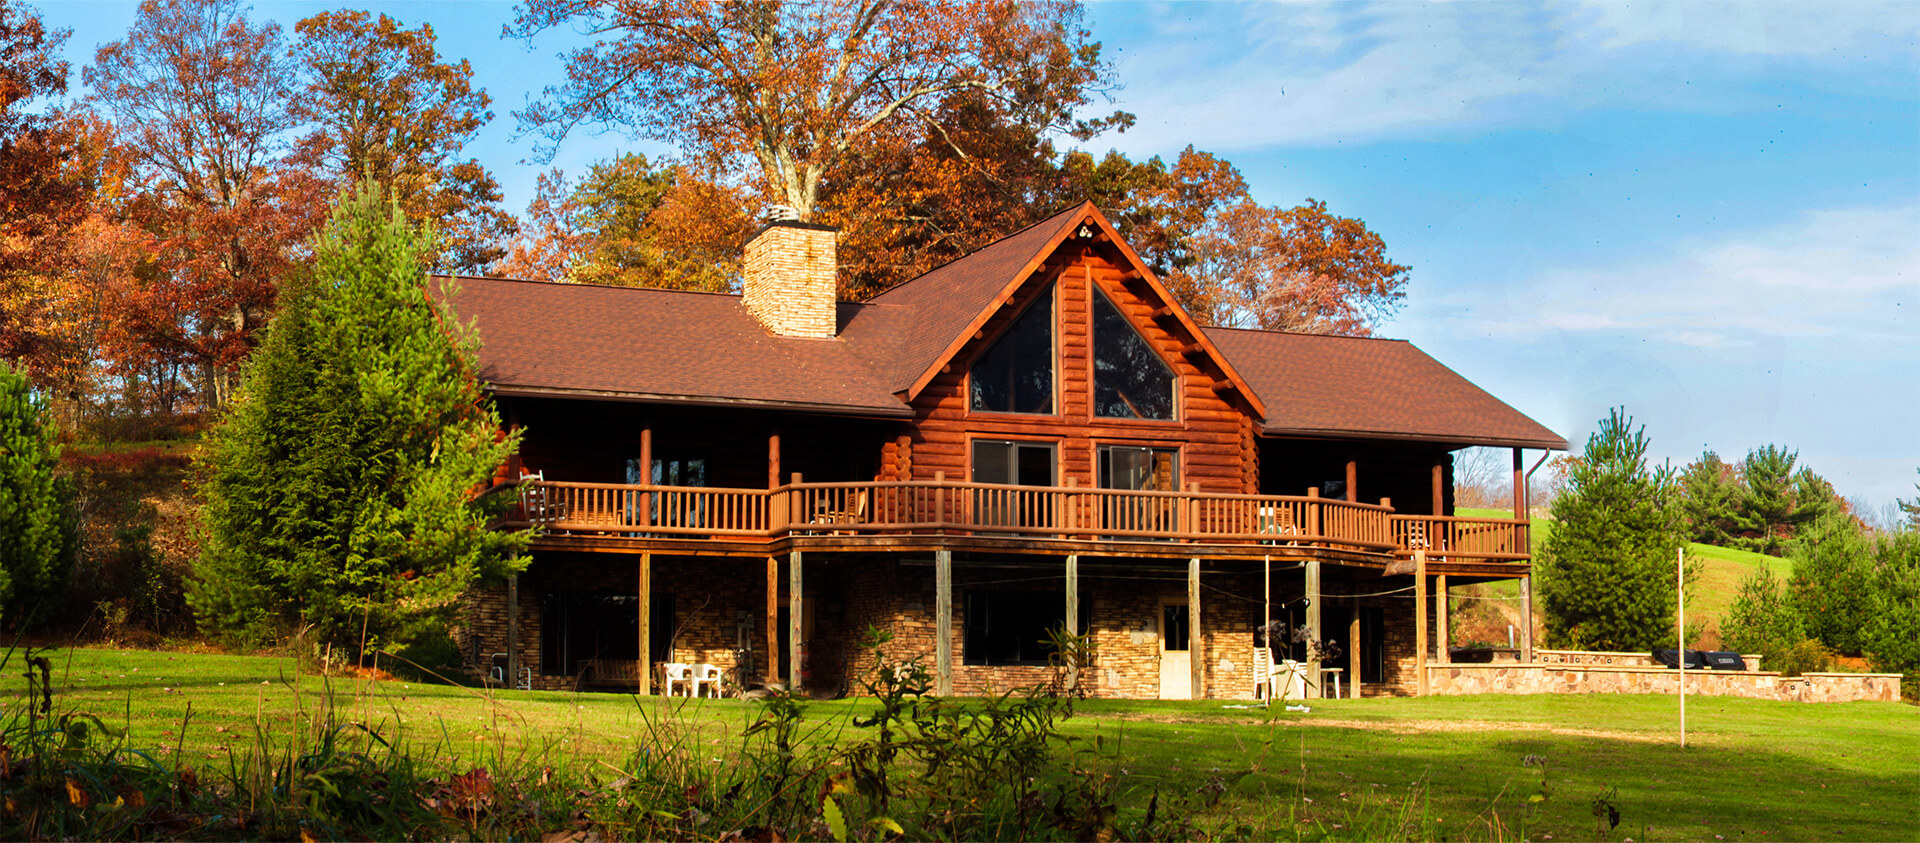 Ponderosa Lodge Cabin Rental Clintin County PA